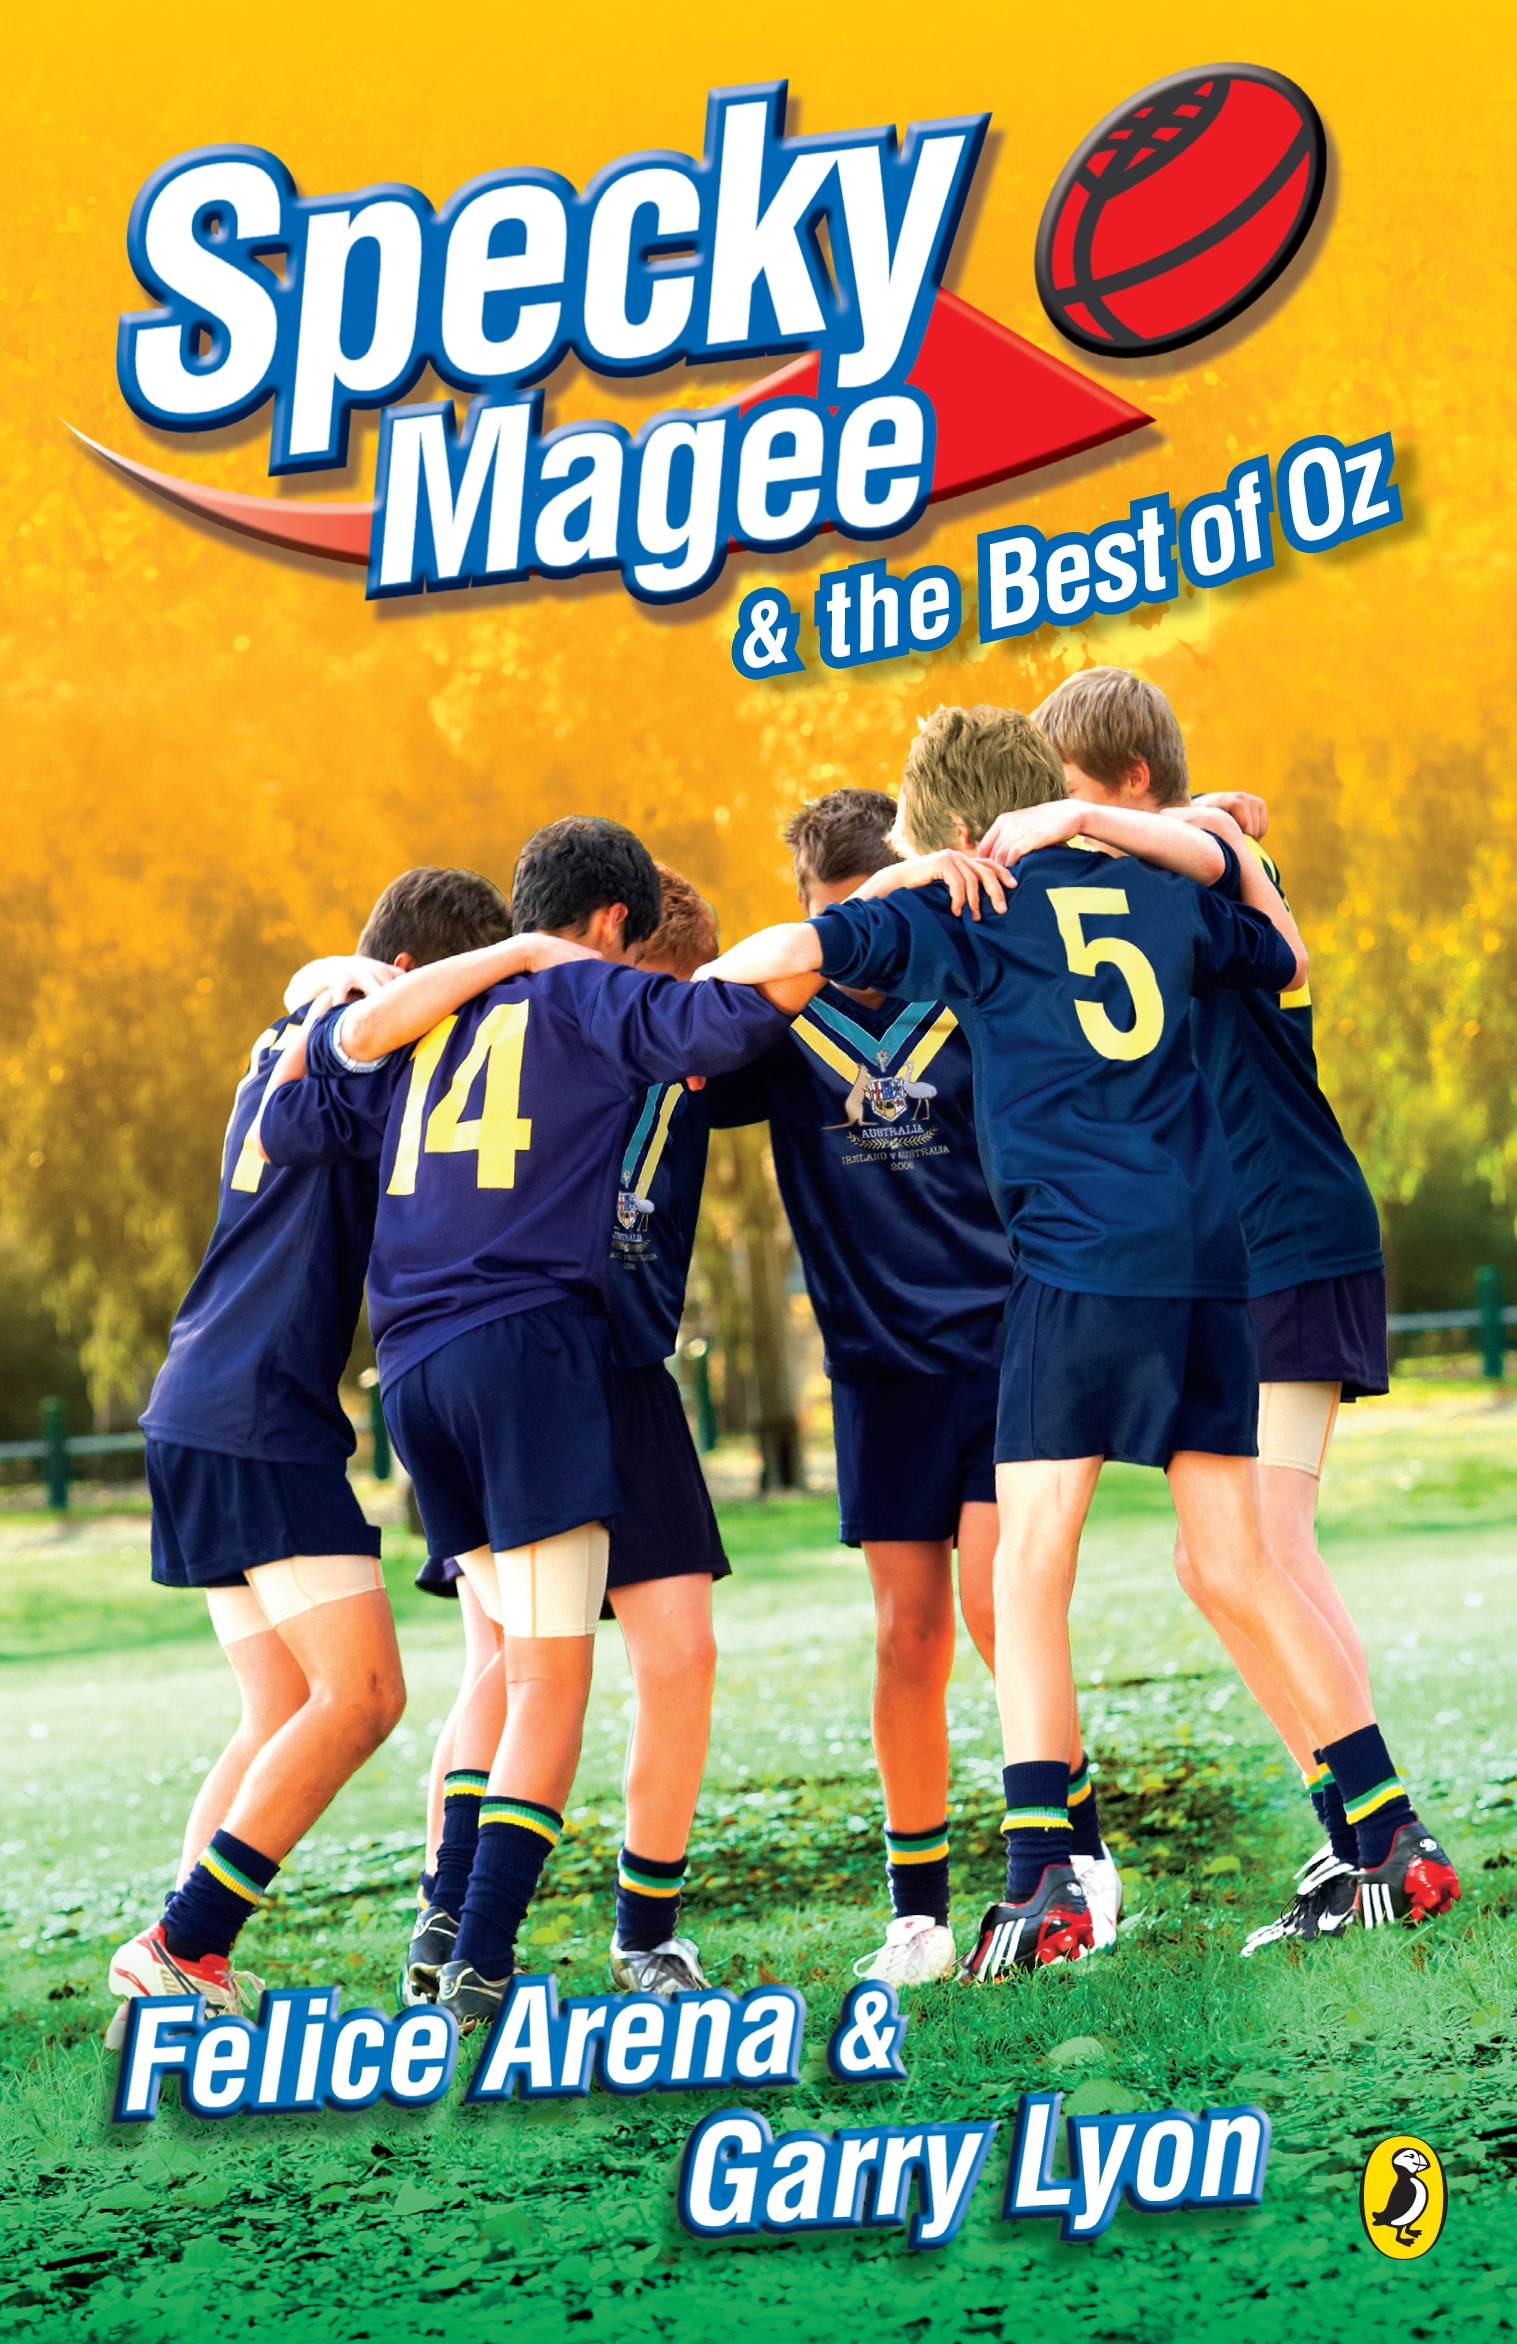 specky magee  u2013 is it time he hung up his boots